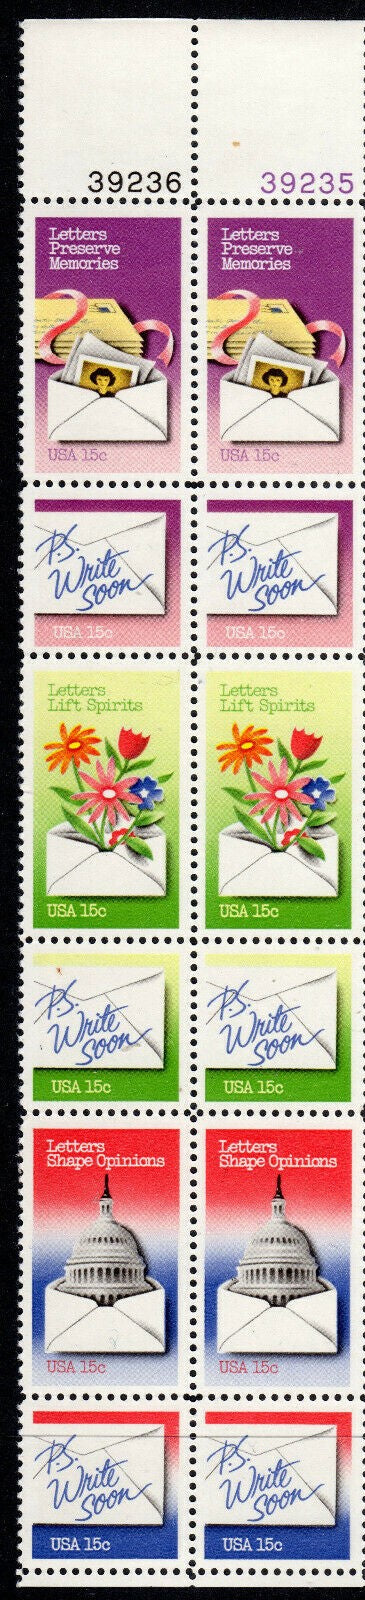 1979 Letter Writing Week Strip Of 12 15c Postage Stamps With Plate Numbers - Sc# 1805-1810 - MNH, OG - CW30a